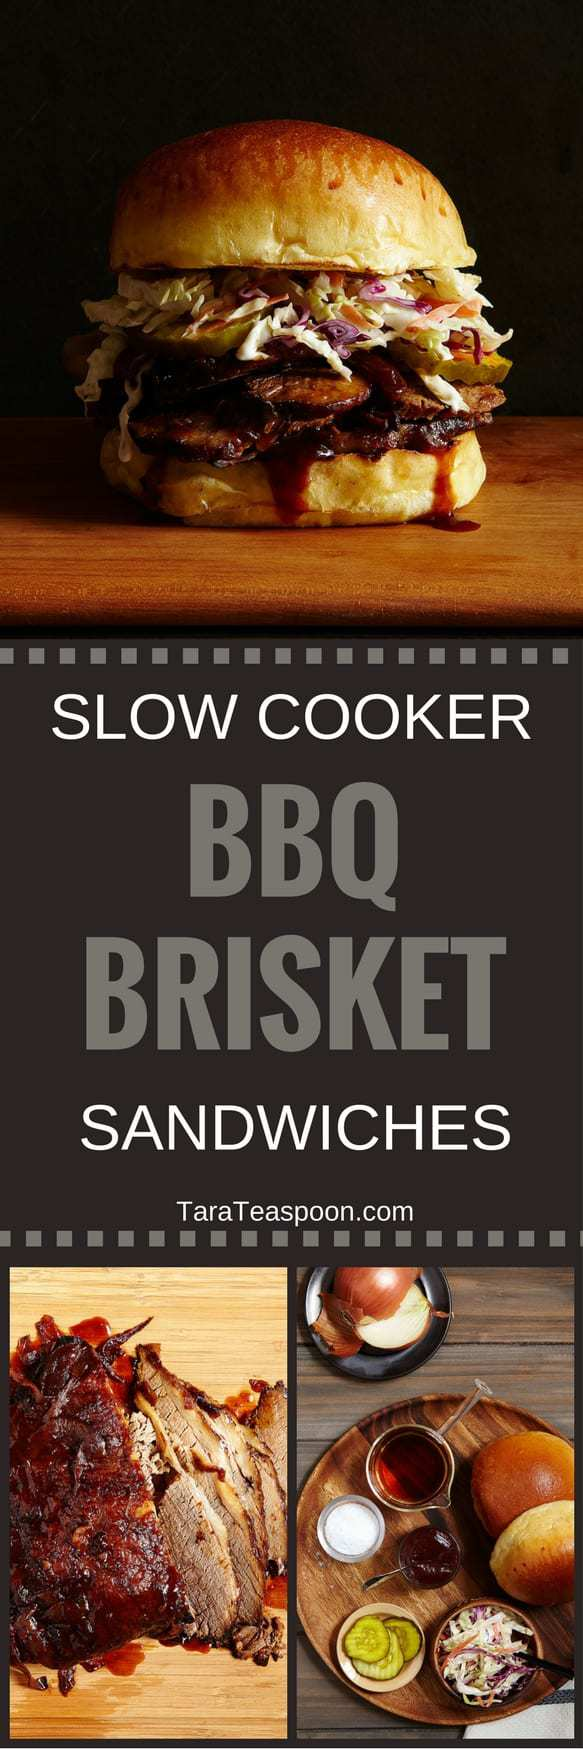 Slow cooker brisket sandwiches knock the socks off of your summer cookout. A few simple steps, plus no standing over a grill, make a delicious BBQ meal.